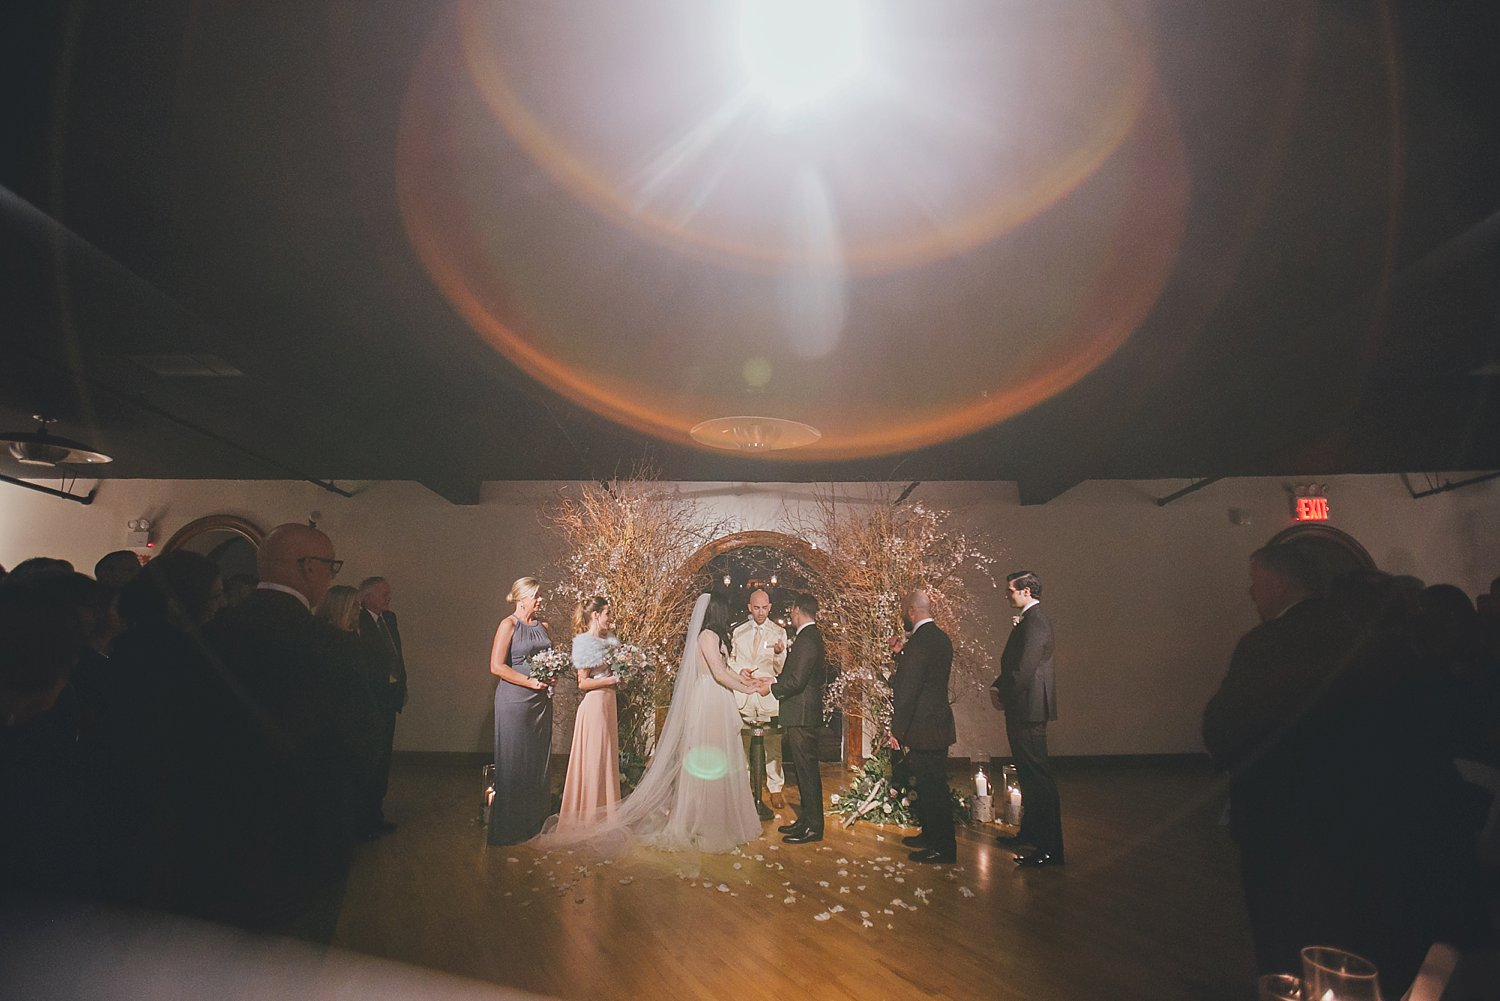 nyc-wedding-photography-nj-tri-state-cinematography-intothestory-by-moo-jae_0206.jpg